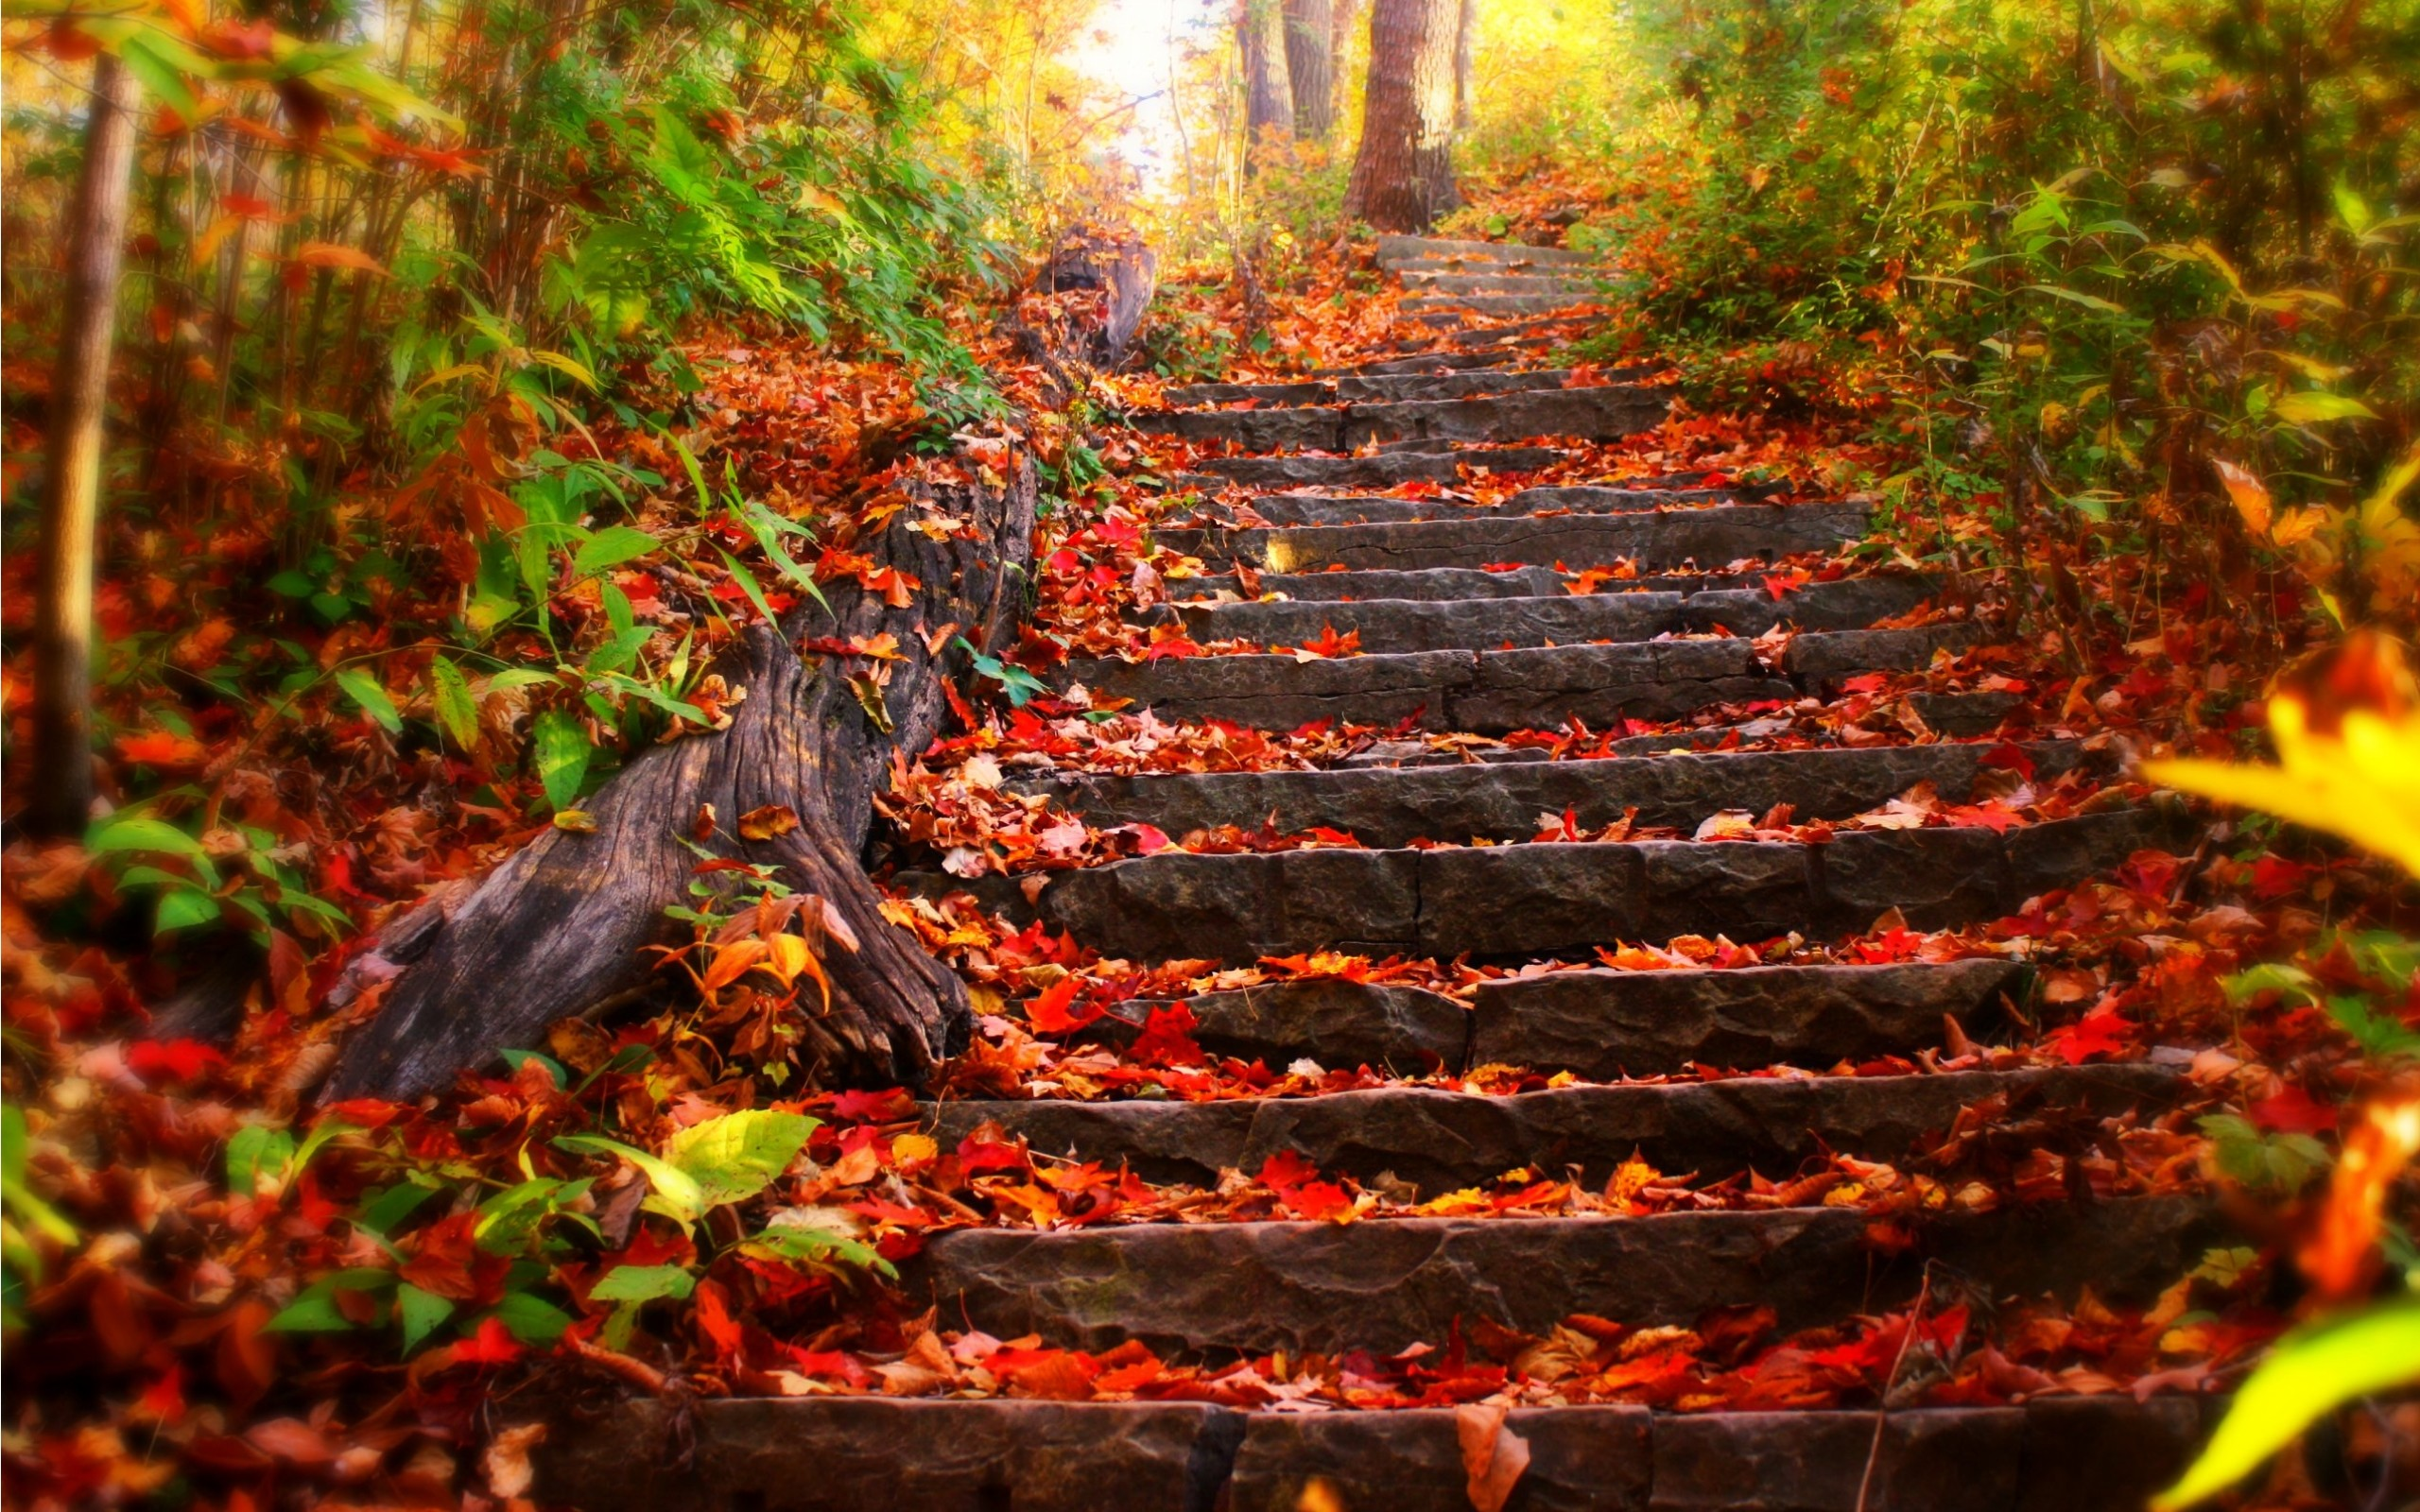 High Quality Foliage Wallpapers Widescreen, YTQ.19